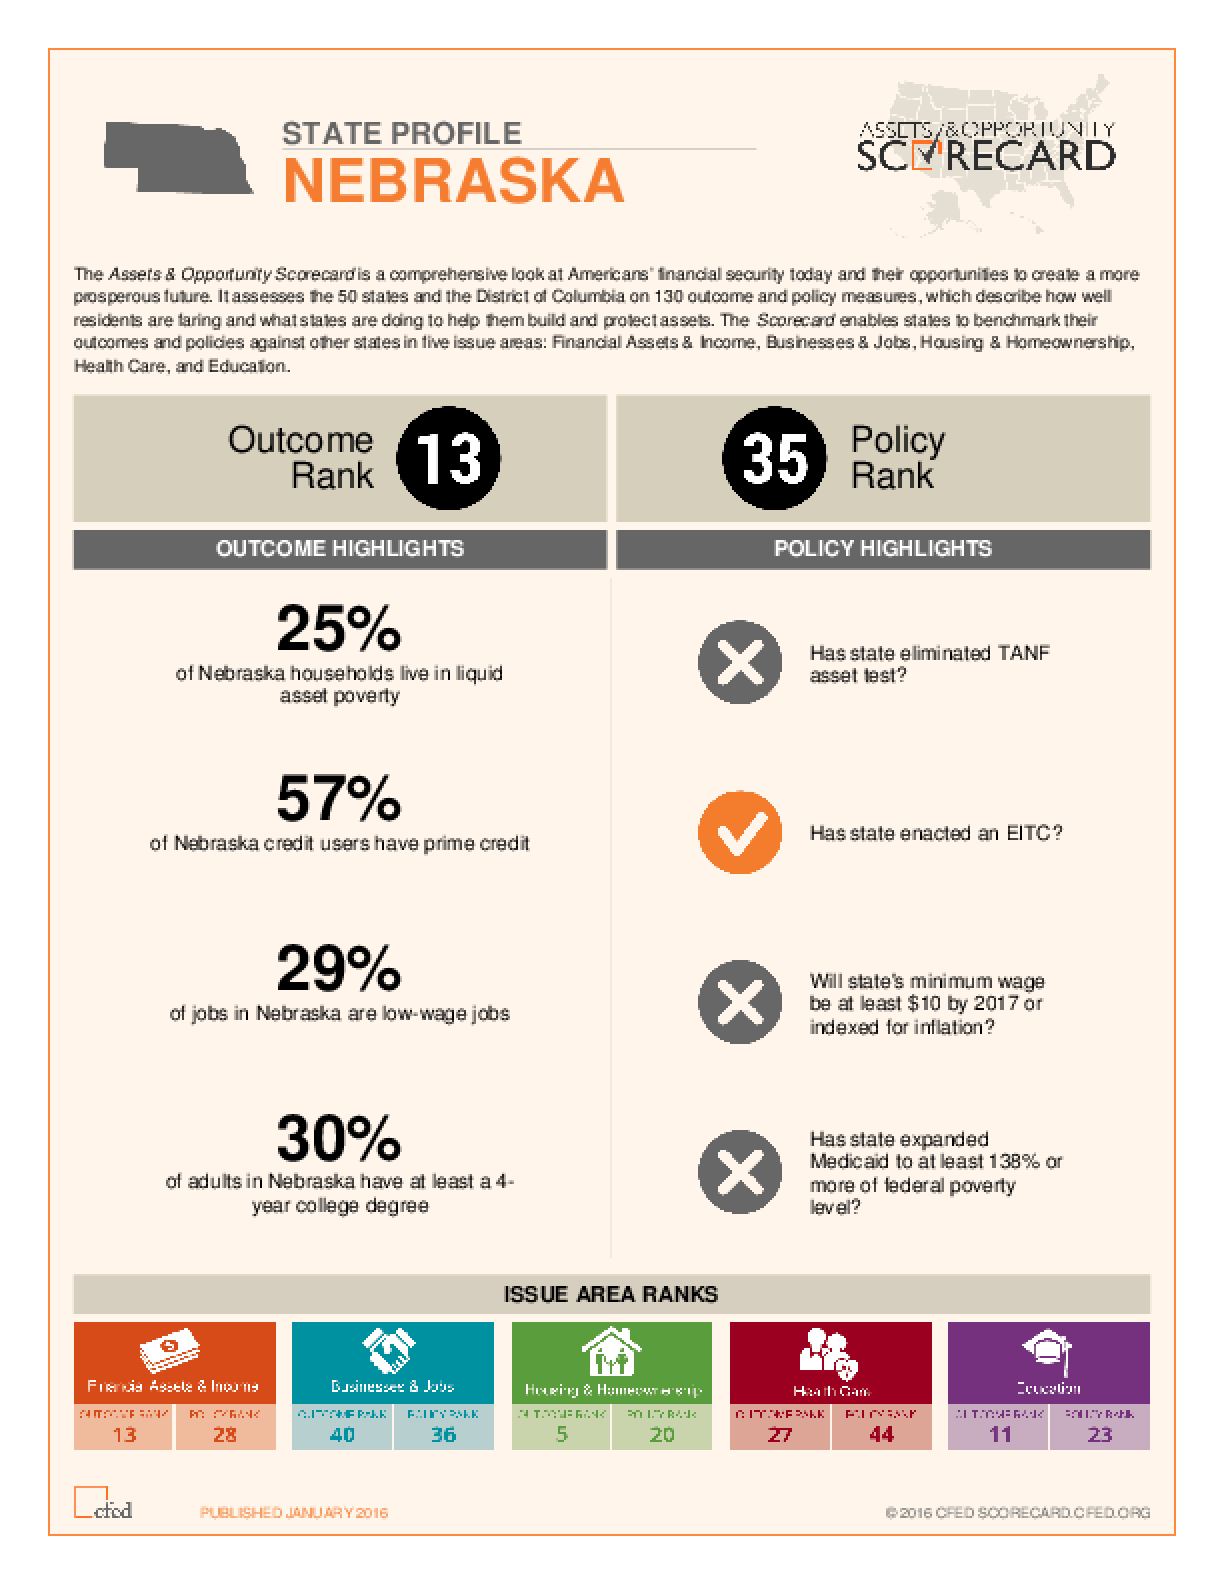 State Profile Nebraska: Assets and Opportunity Scorecard